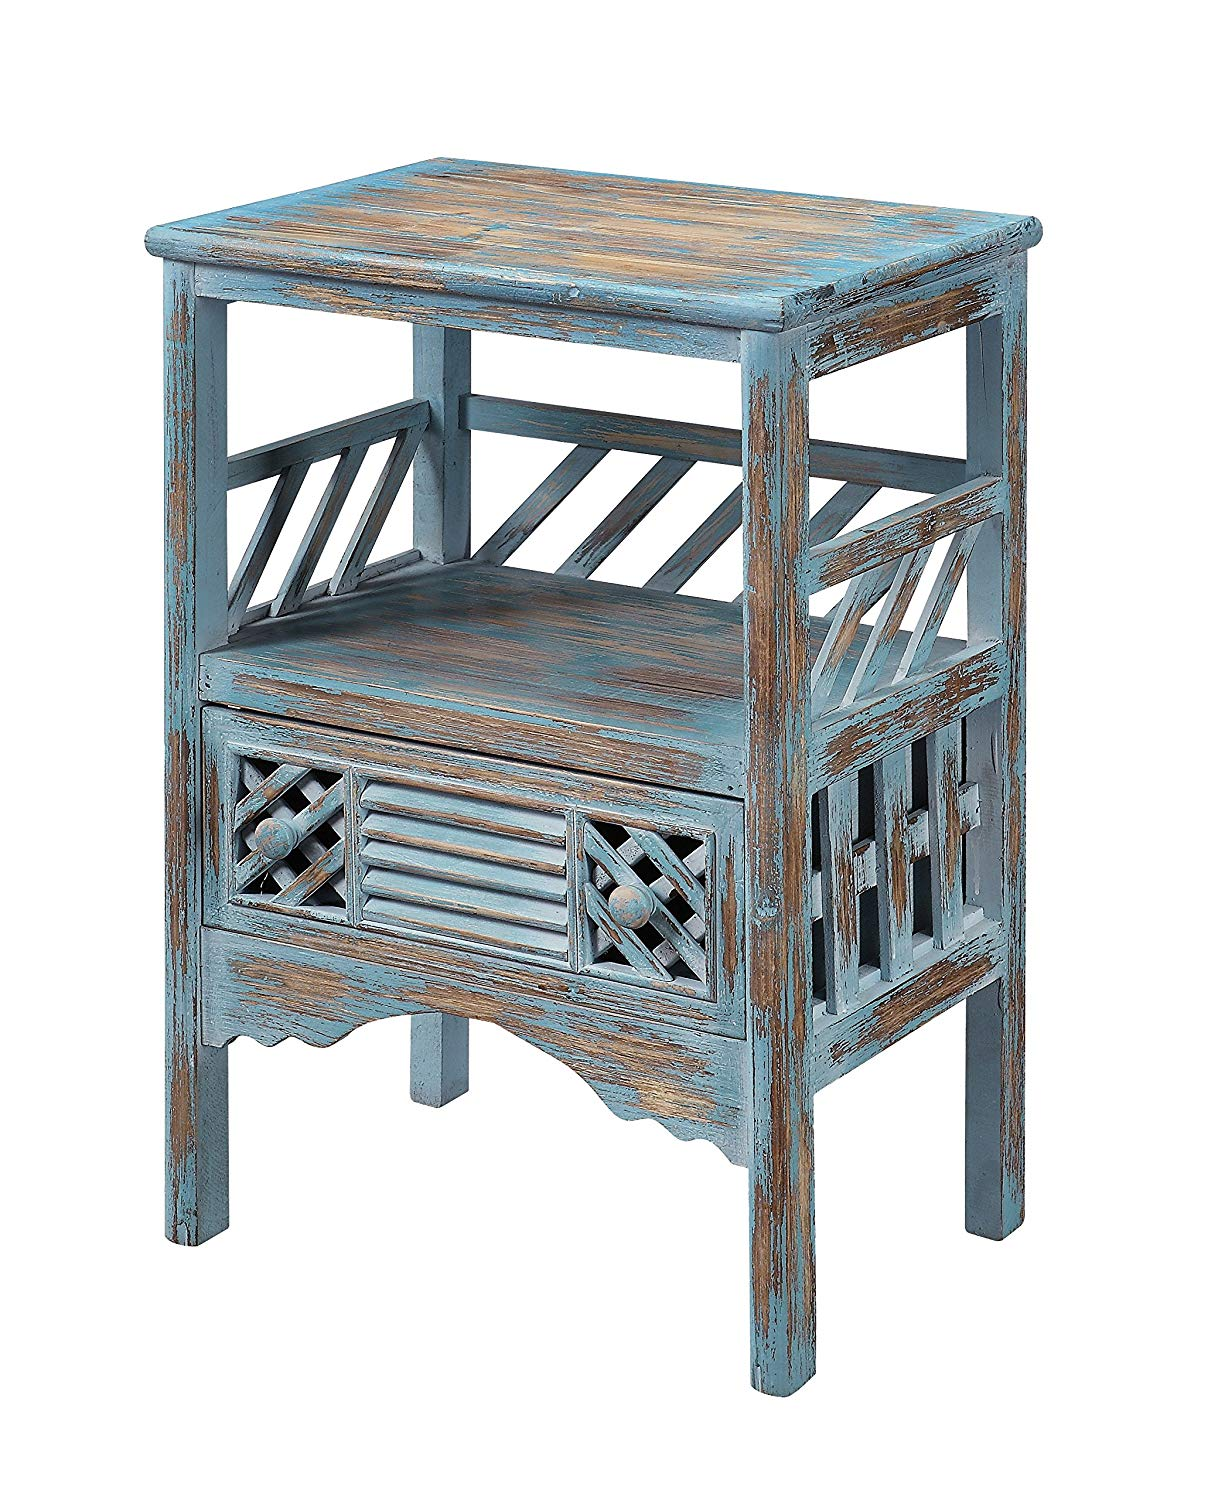 treasure trove accents drawer accent table bali blue distressed grey quatrefoil end with mirror rub through kitchen dining pier papasan chair bath and beyond registry small round